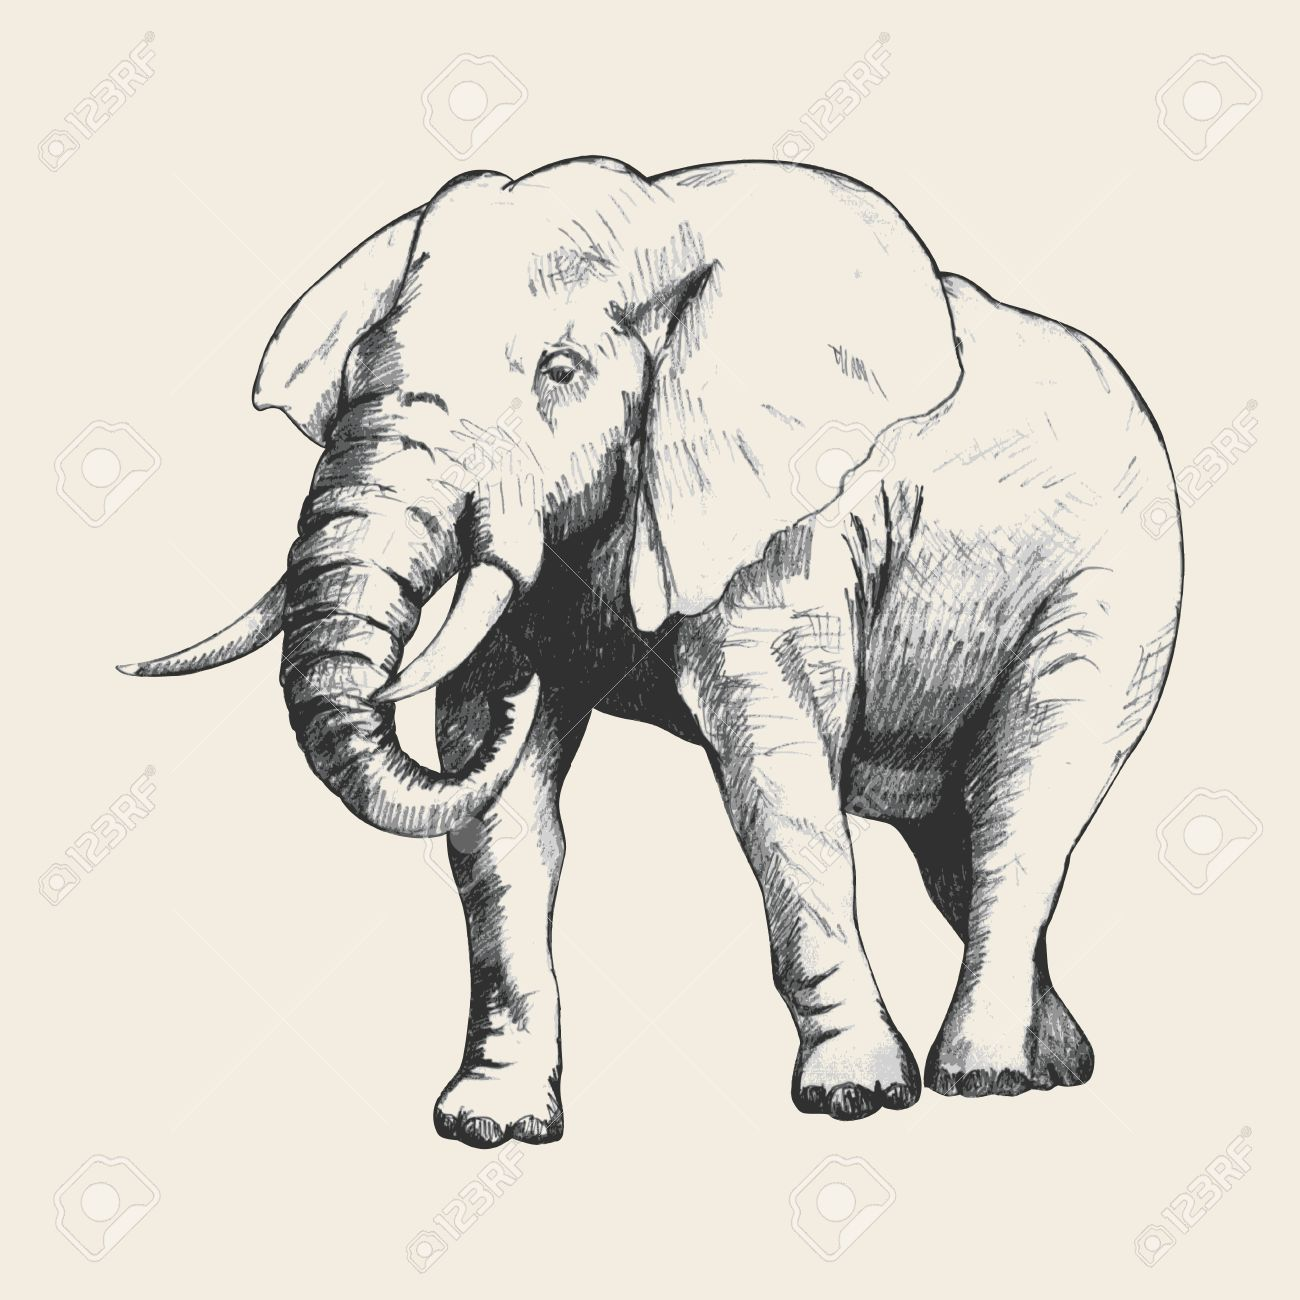 1300x1300 Pencil Sketch Of An Elephant Traced In Adobe Illustrator Royalty